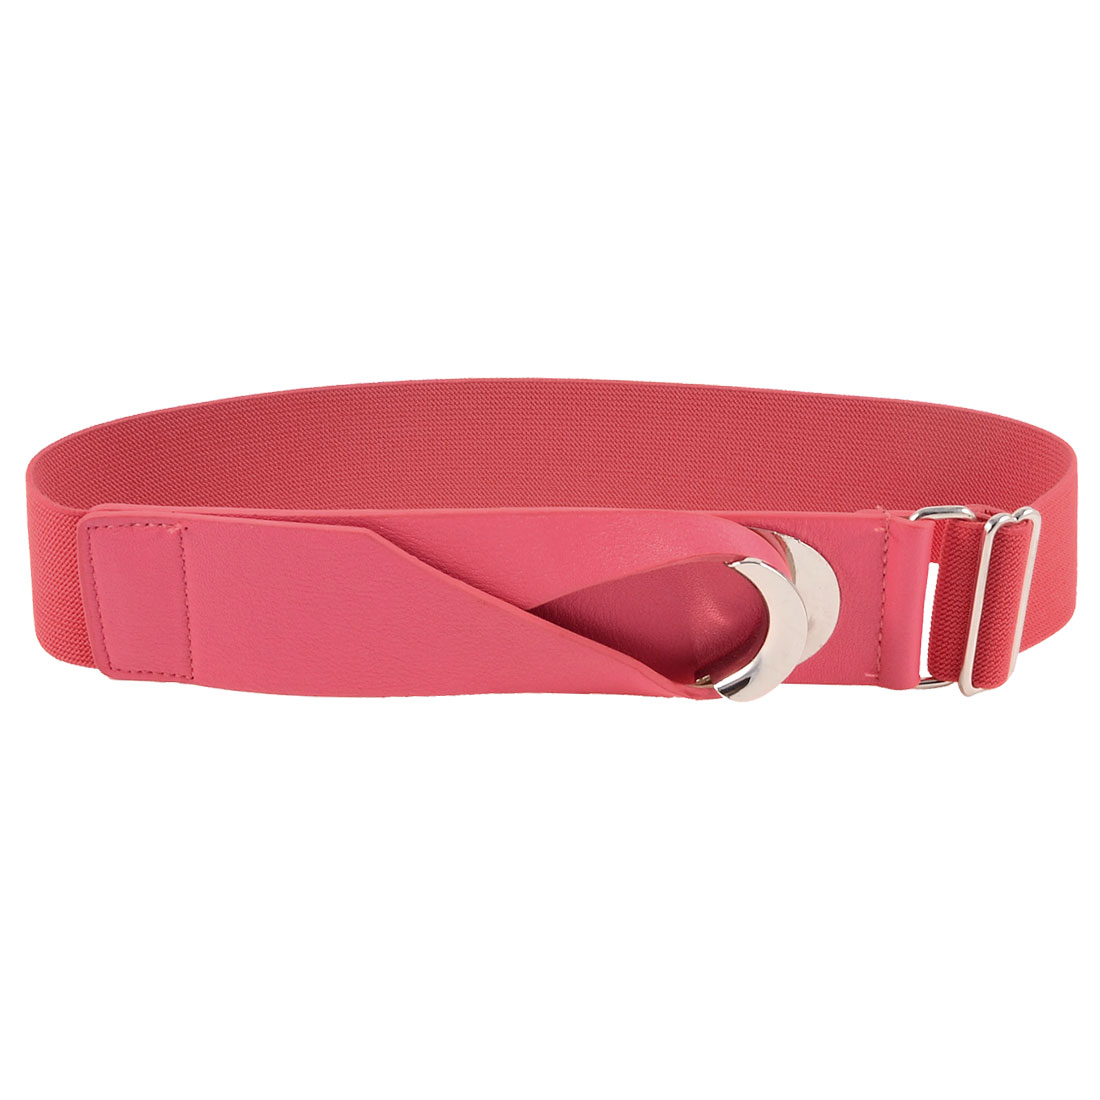 Interlocking Closure Watermelon Red Faux Leather Adjustable Stretchy Waist Belt for Women